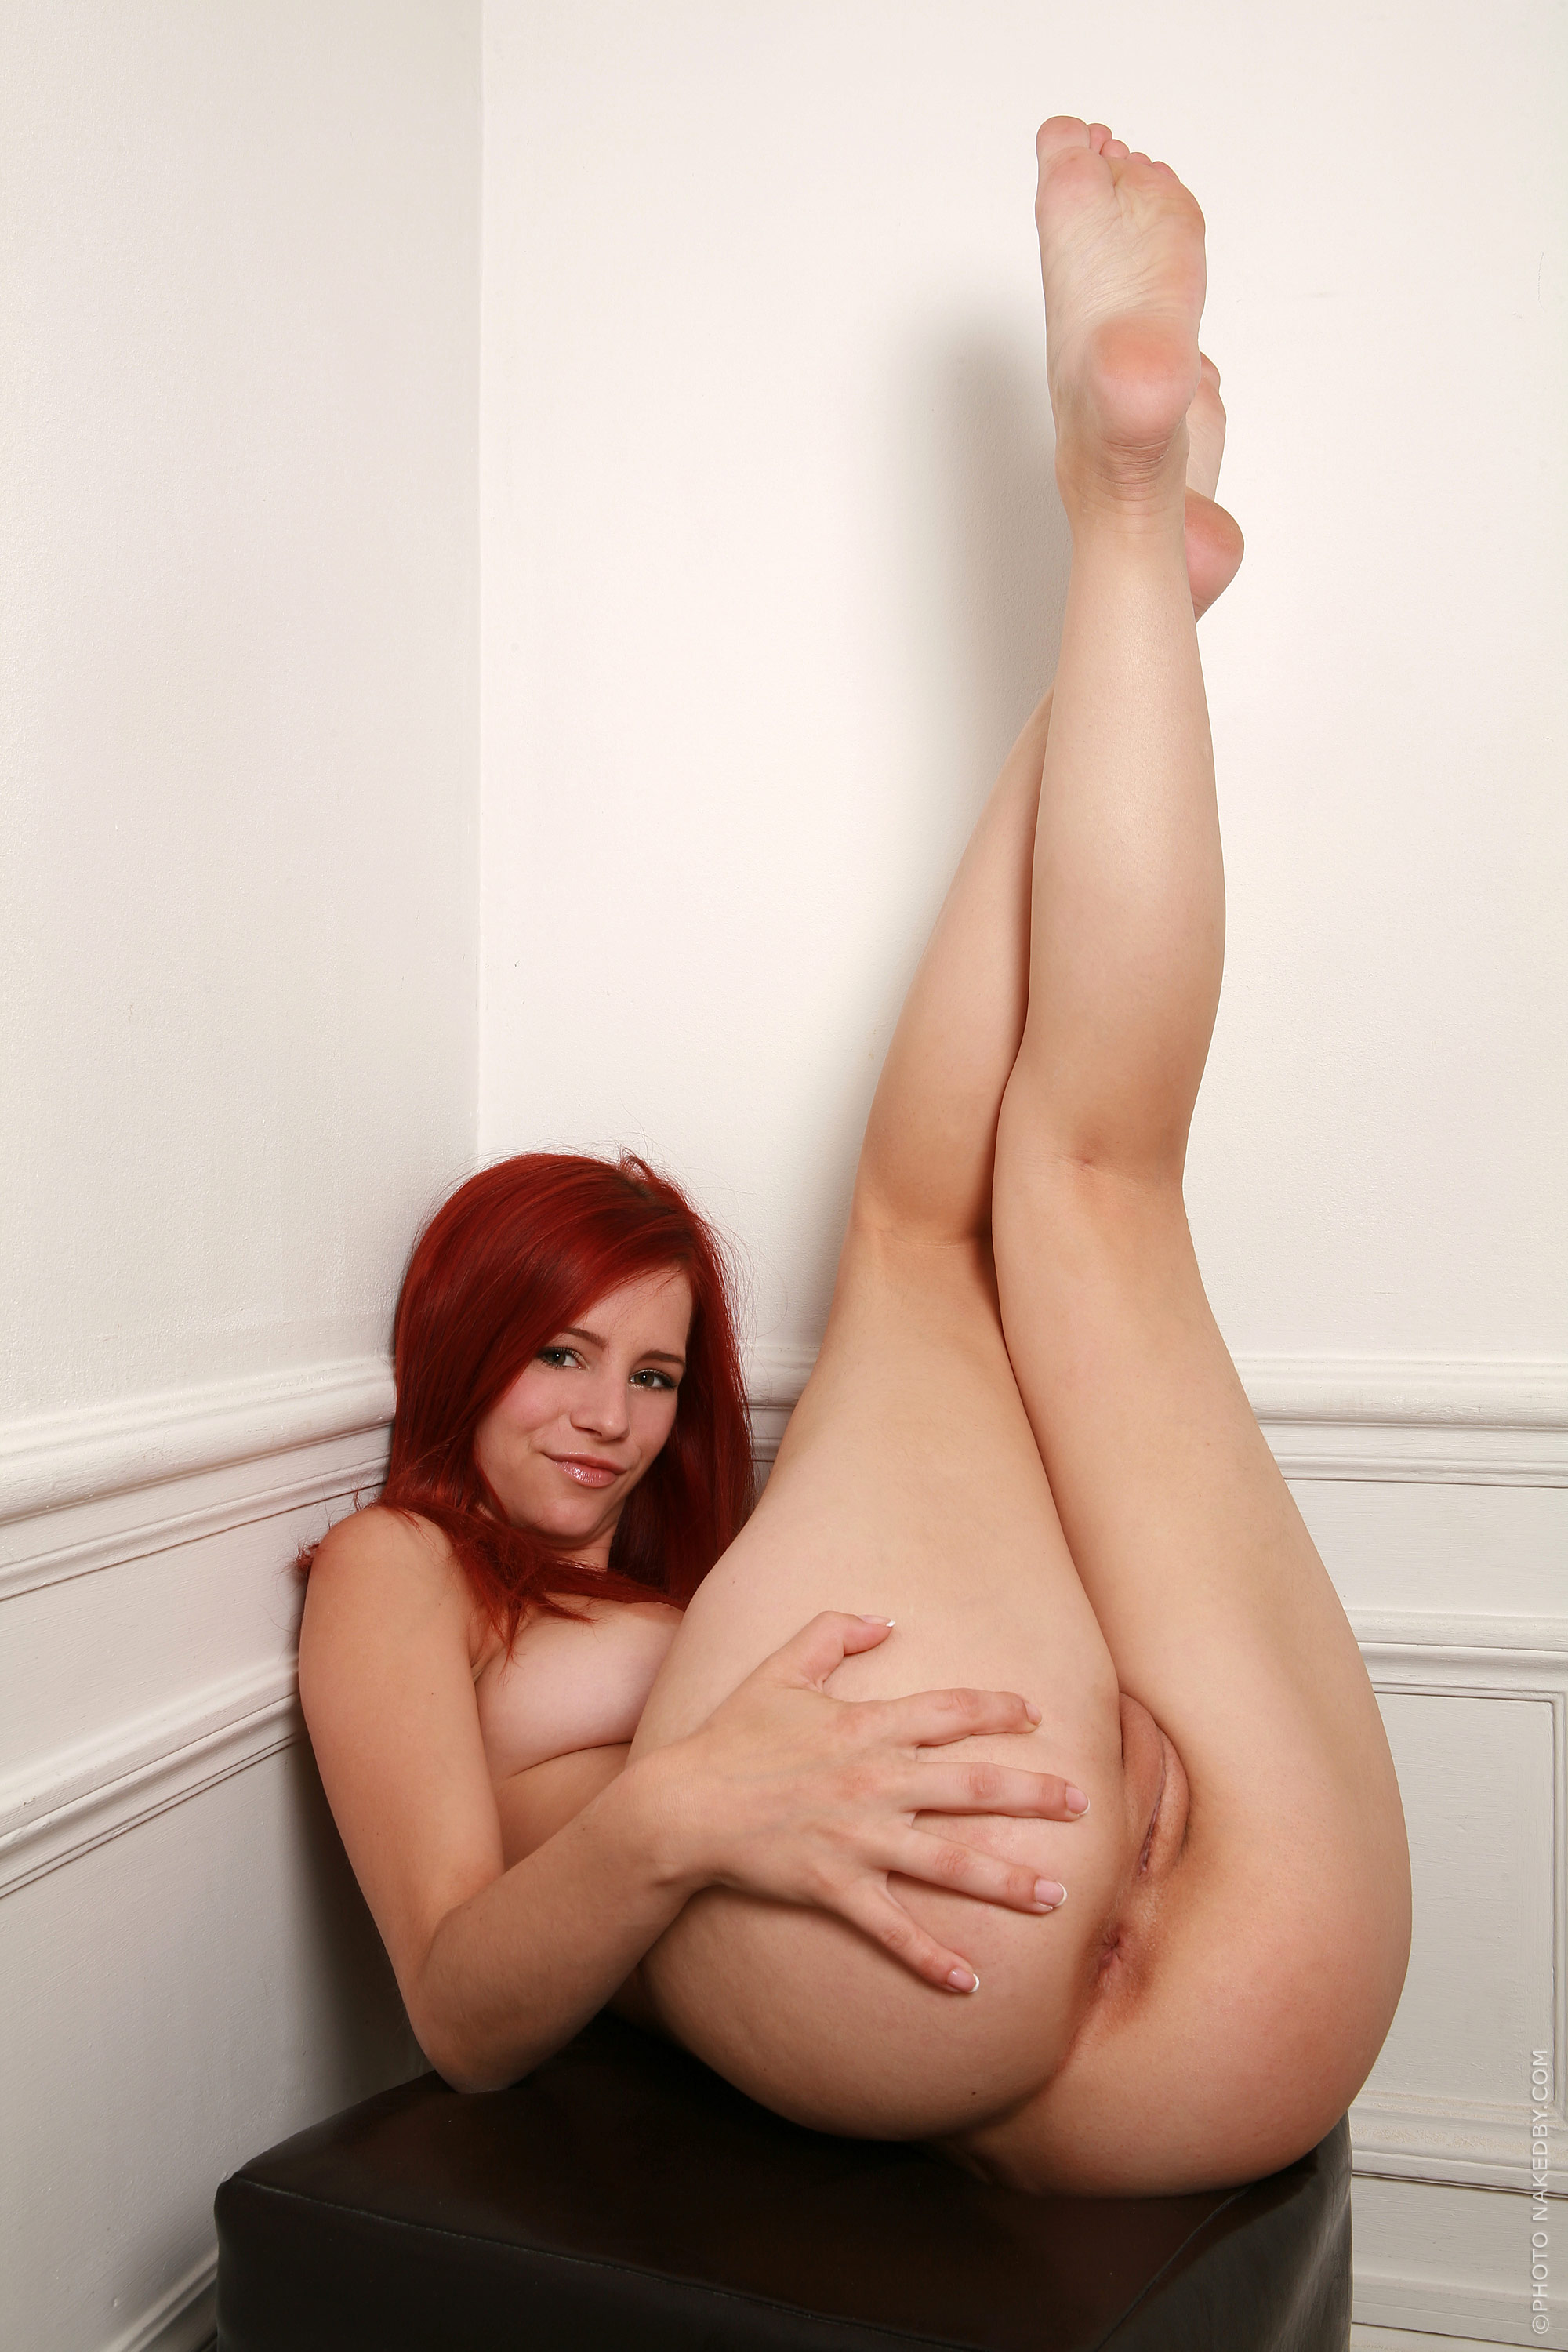 nude-girls-with-legs-up-photo-mix-vol3-70